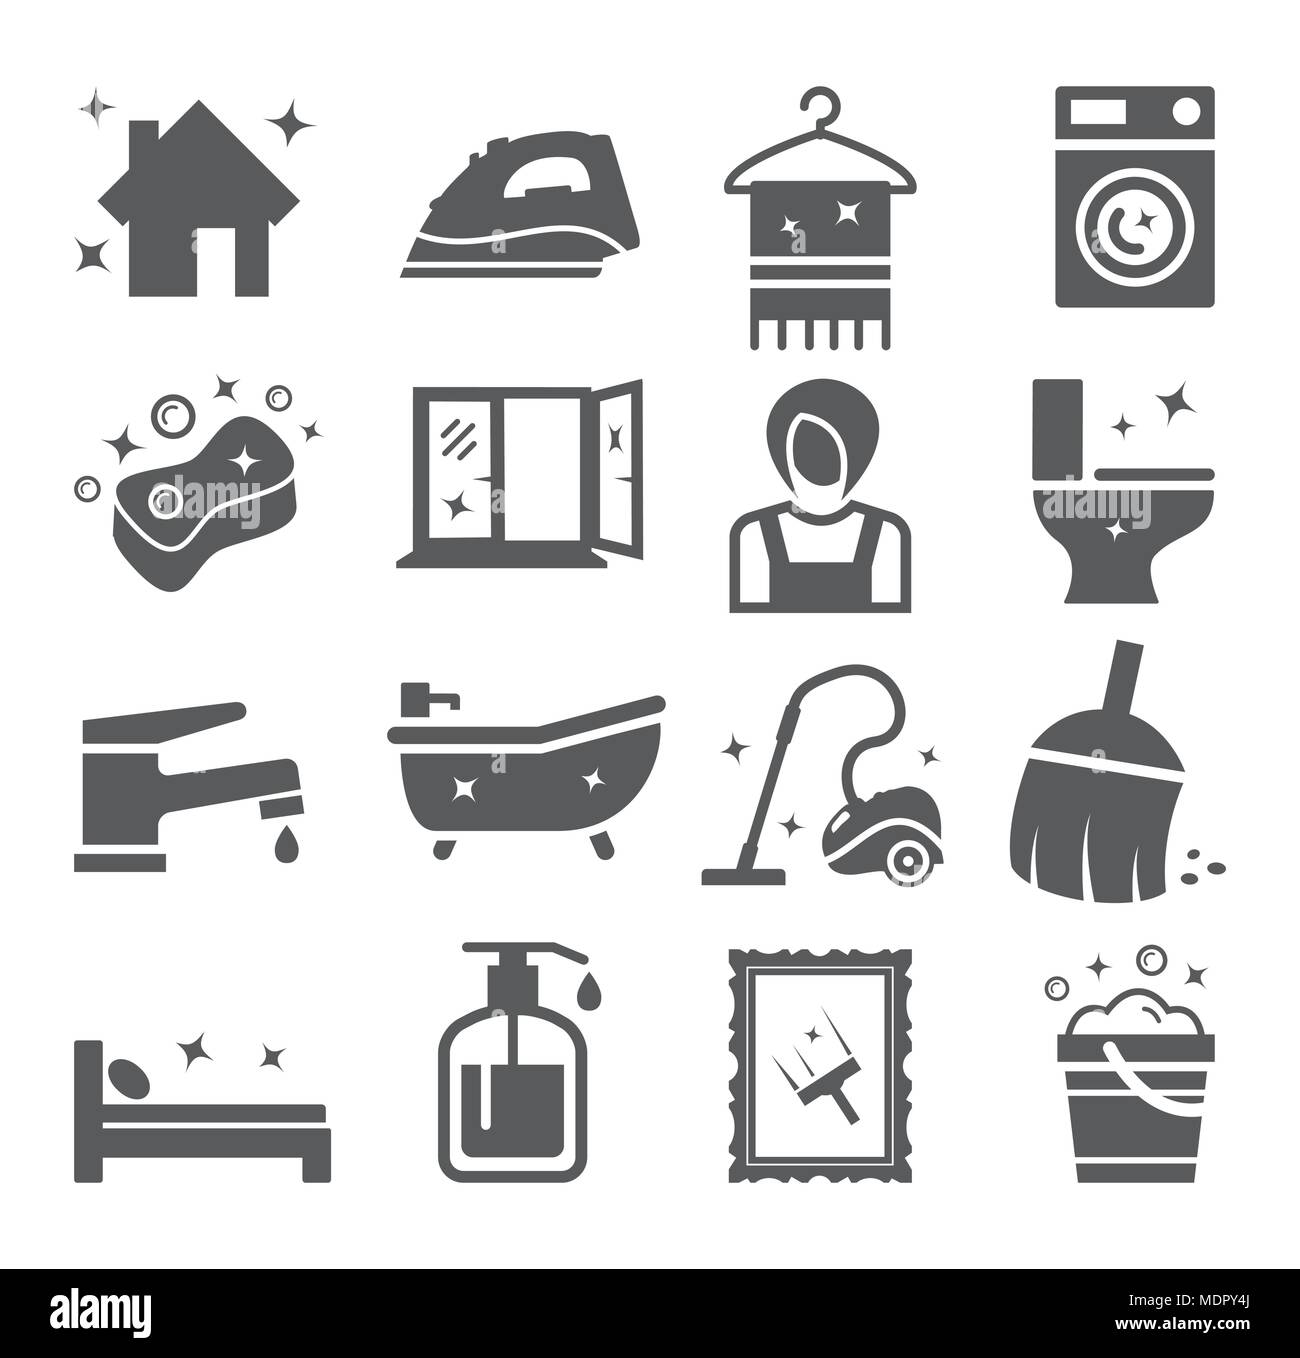 Cleaning and Housework icons - Stock Vector